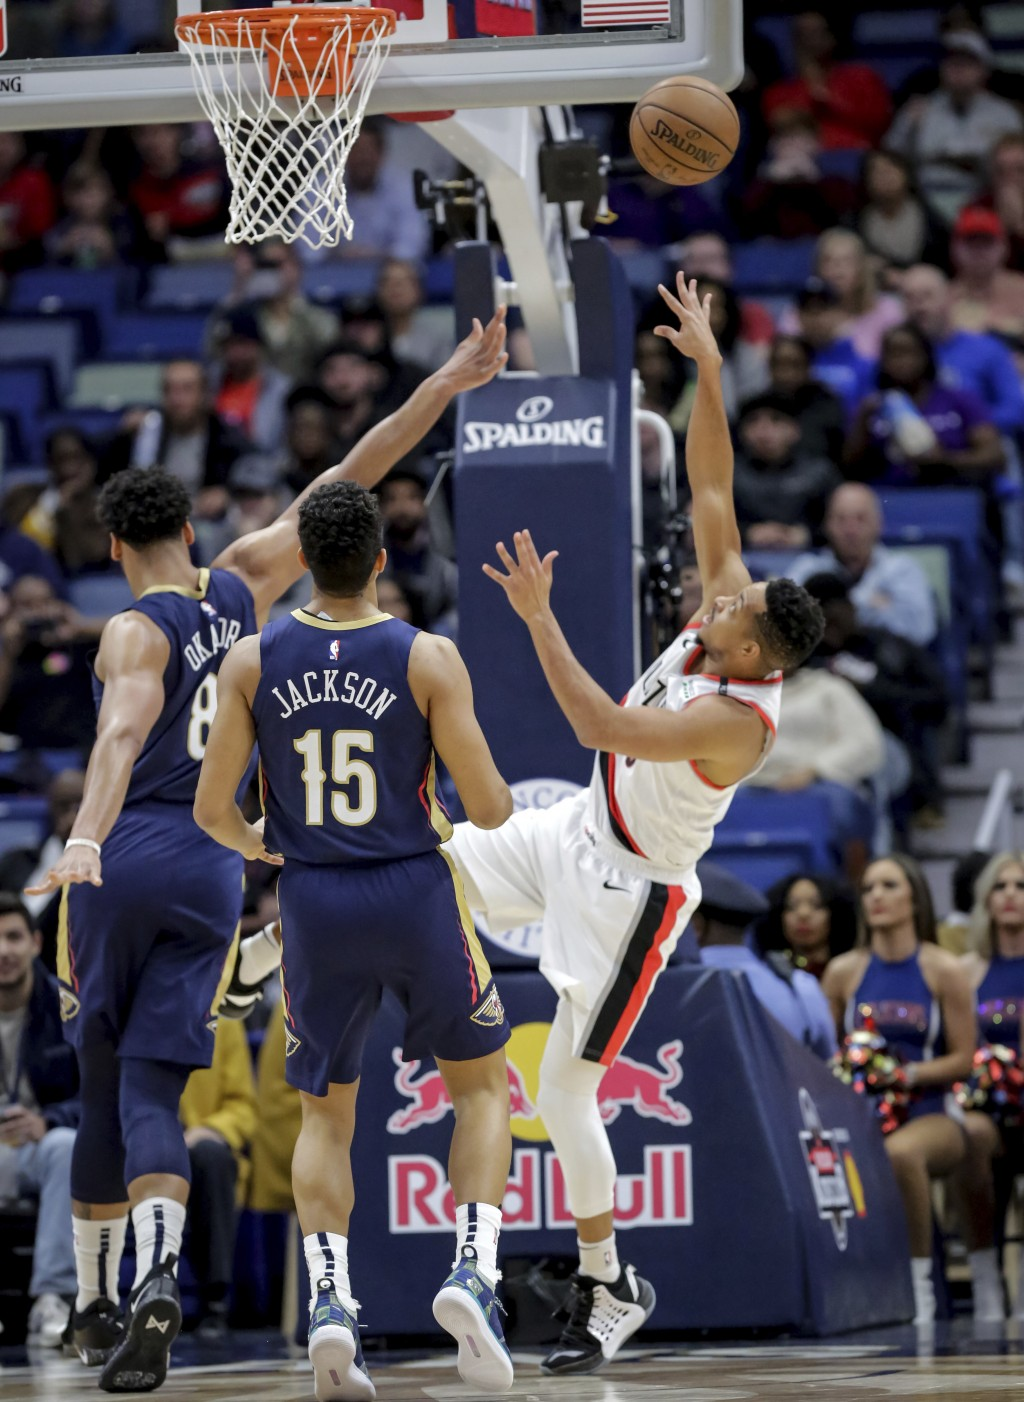 Portland Trail Blazers guard CJ McCollum (3) is fouled by New Orleans Pelicans center Jahlil Okafor (8) as guard Frank Jackson (15) trails the play in